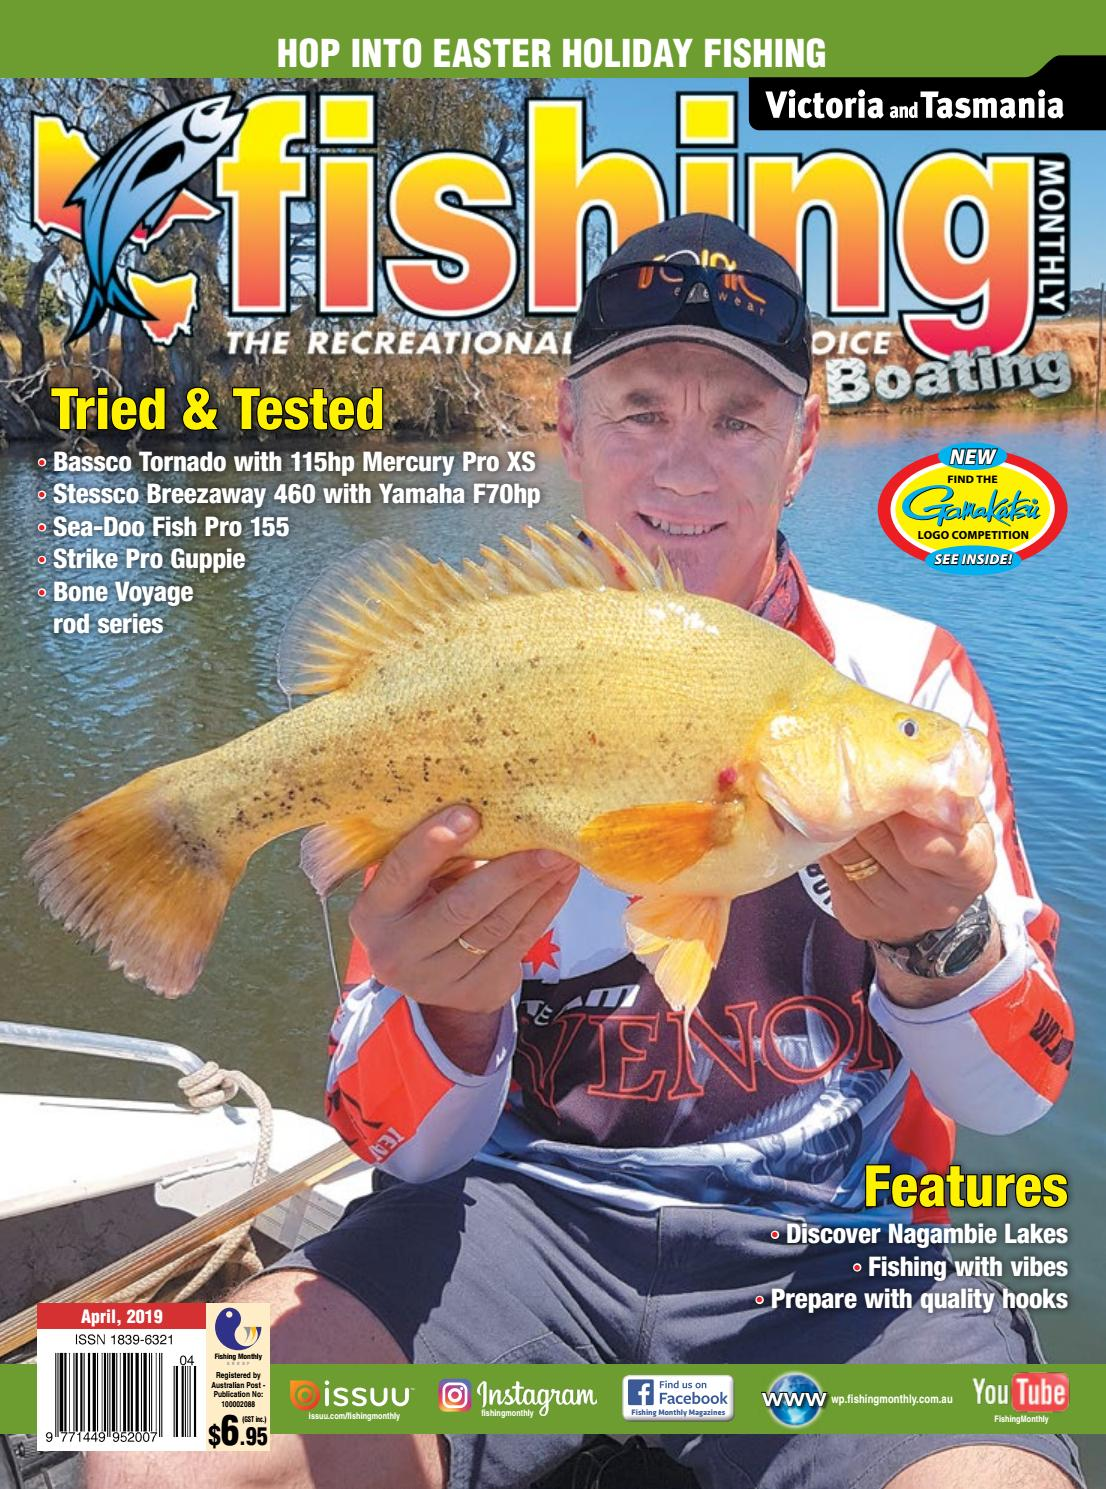 9b6cbe81cfc Victoria and Tasmania Fishing Monthly April 2019 by Fishing Monthly - issuu